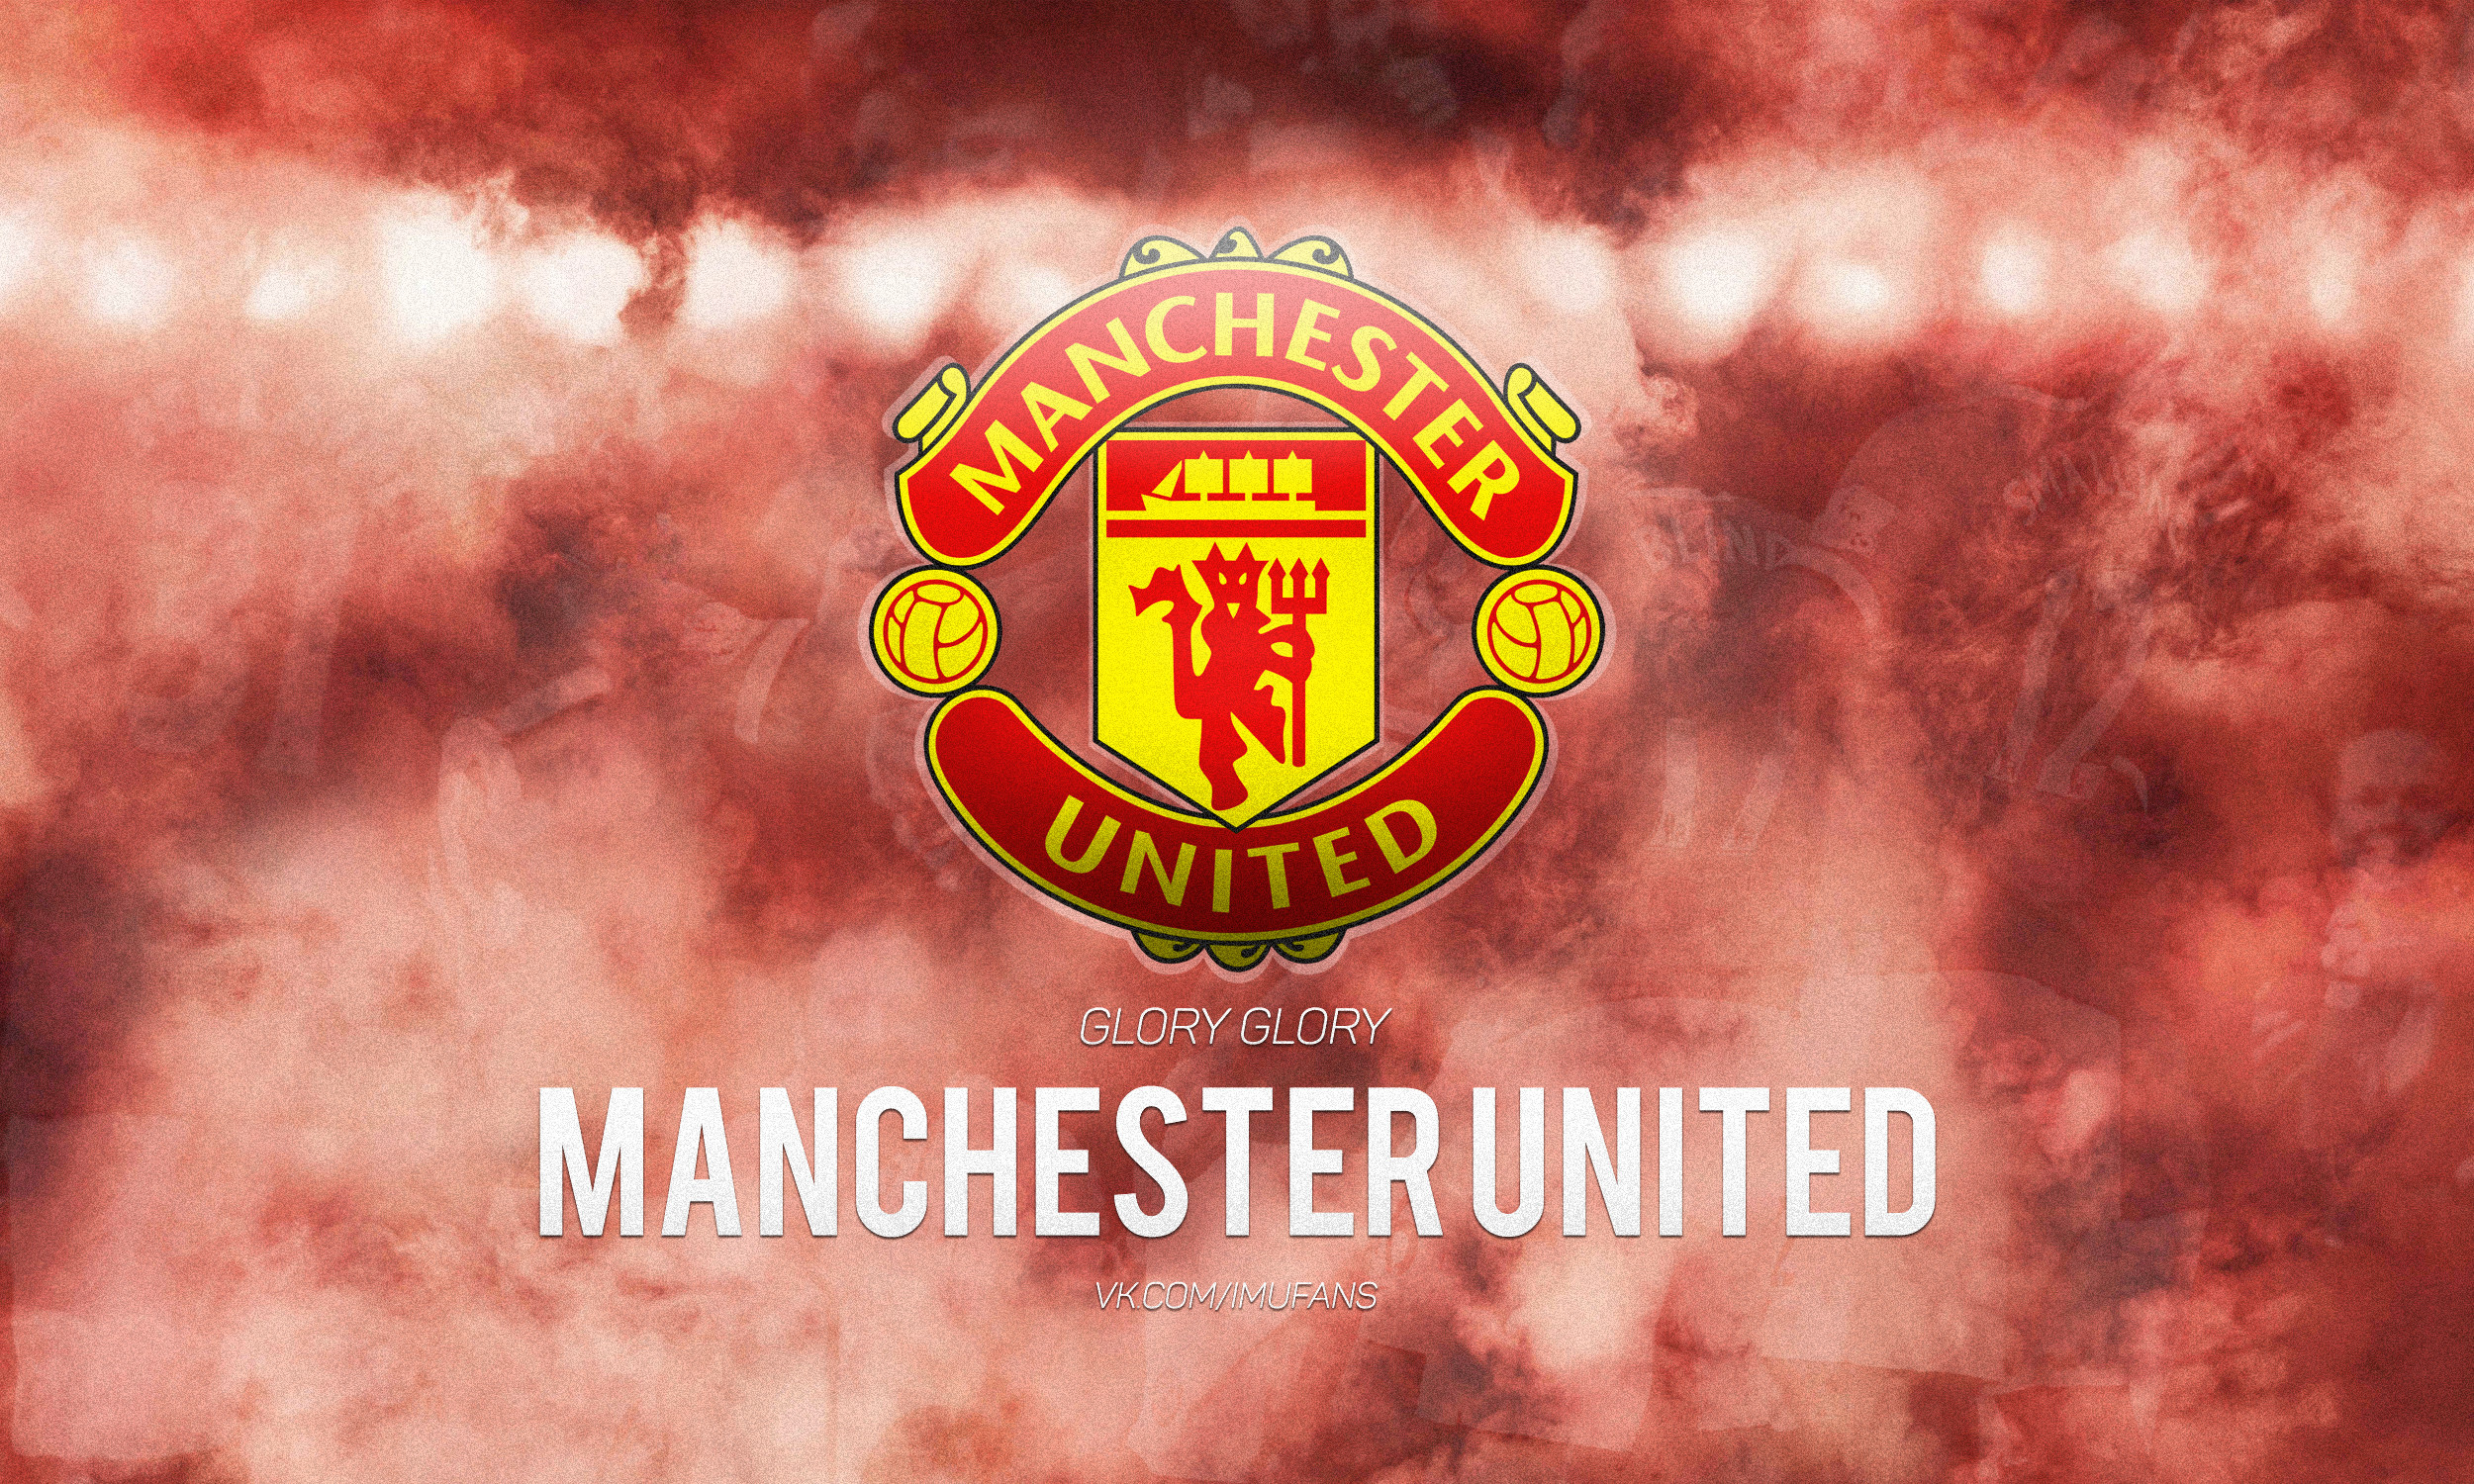 2560x1600 Manchester United Wallpaper Hd 2018 67 Images Desktop Mobile Download 1242x2208 Manchester Arsenal Wallpaper Hd 2018 #3365